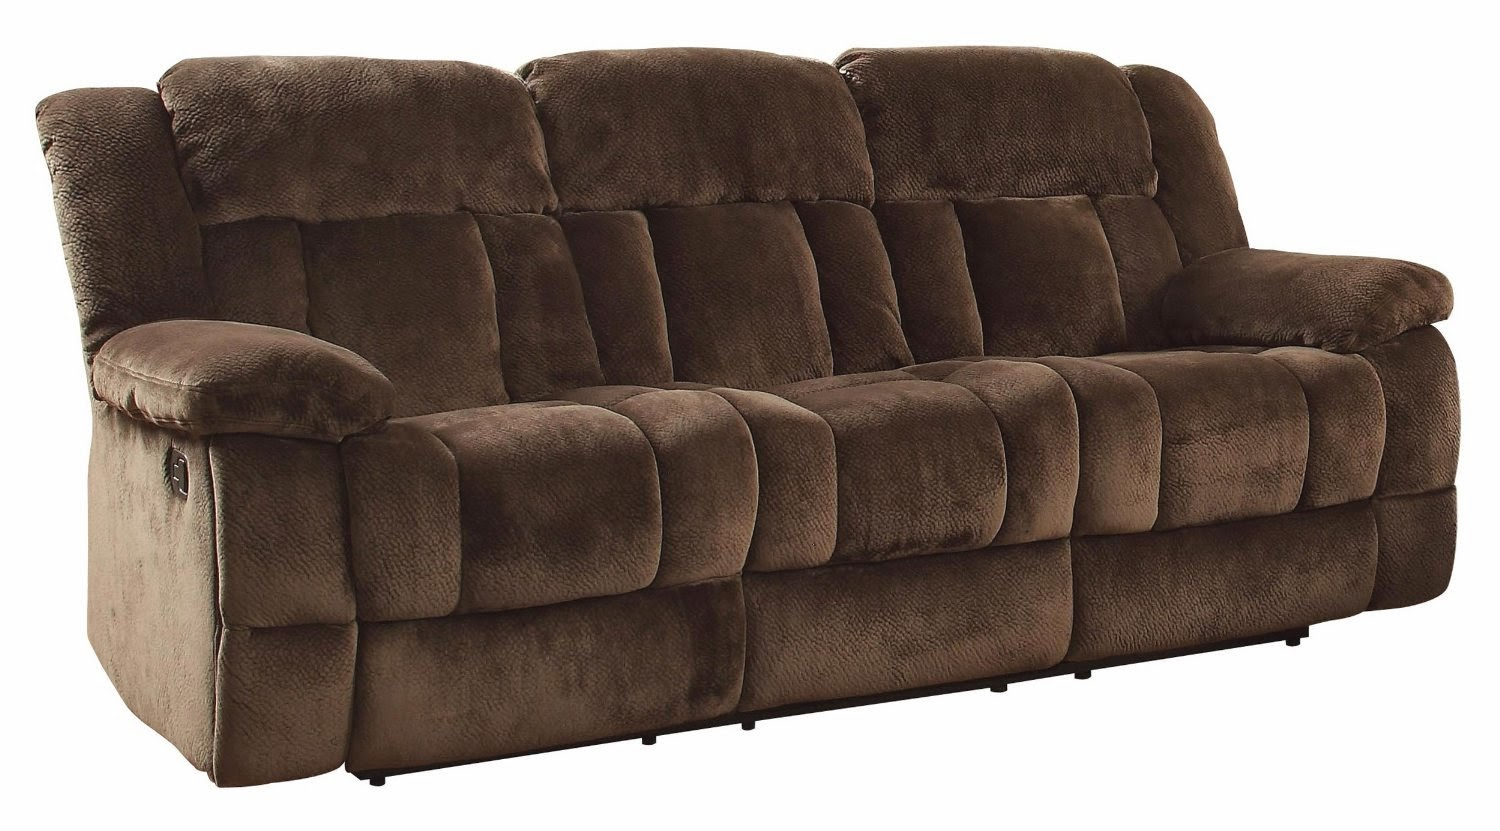 Cheap reclining sofas sale fabric recliner sofas sale for Fabric couches for sale